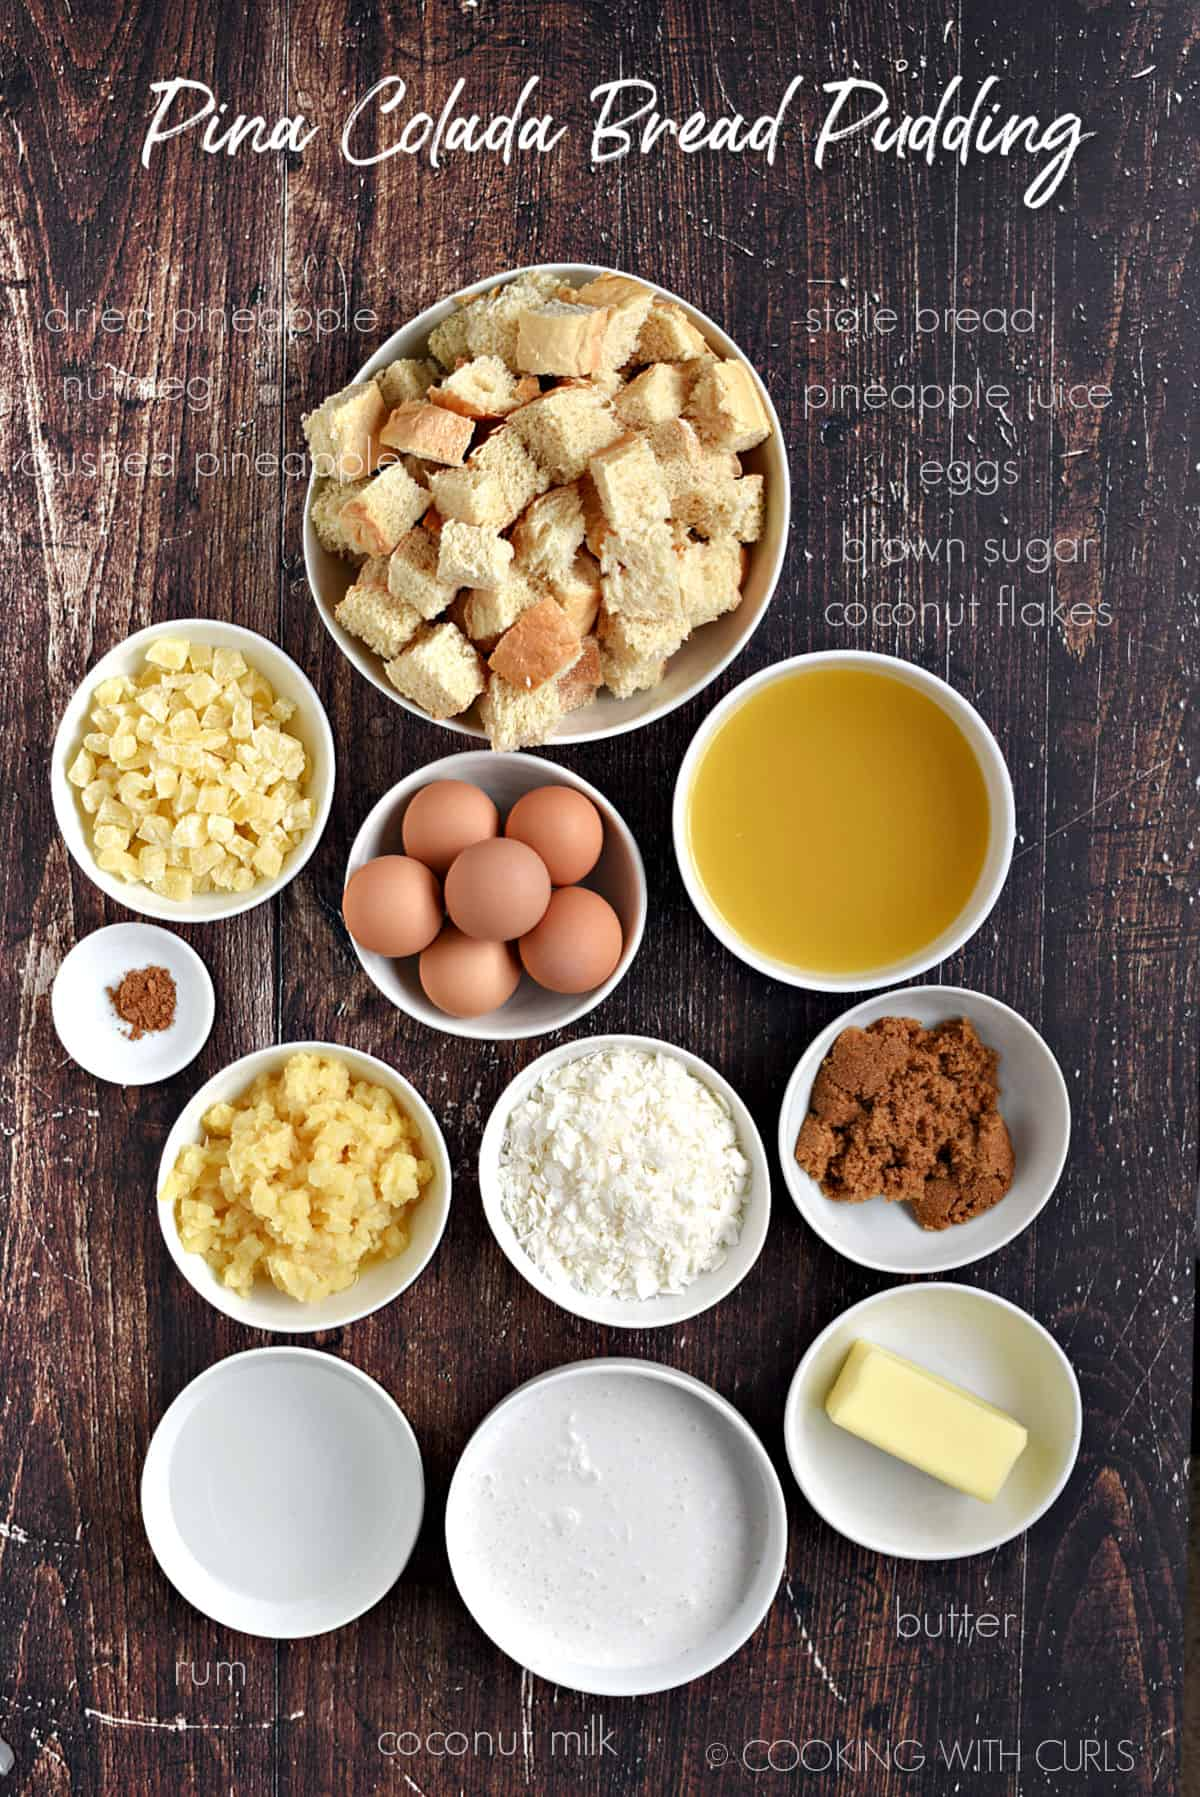 Ingredients to make Pina Colada Bread Pudding all in separate white bowls.